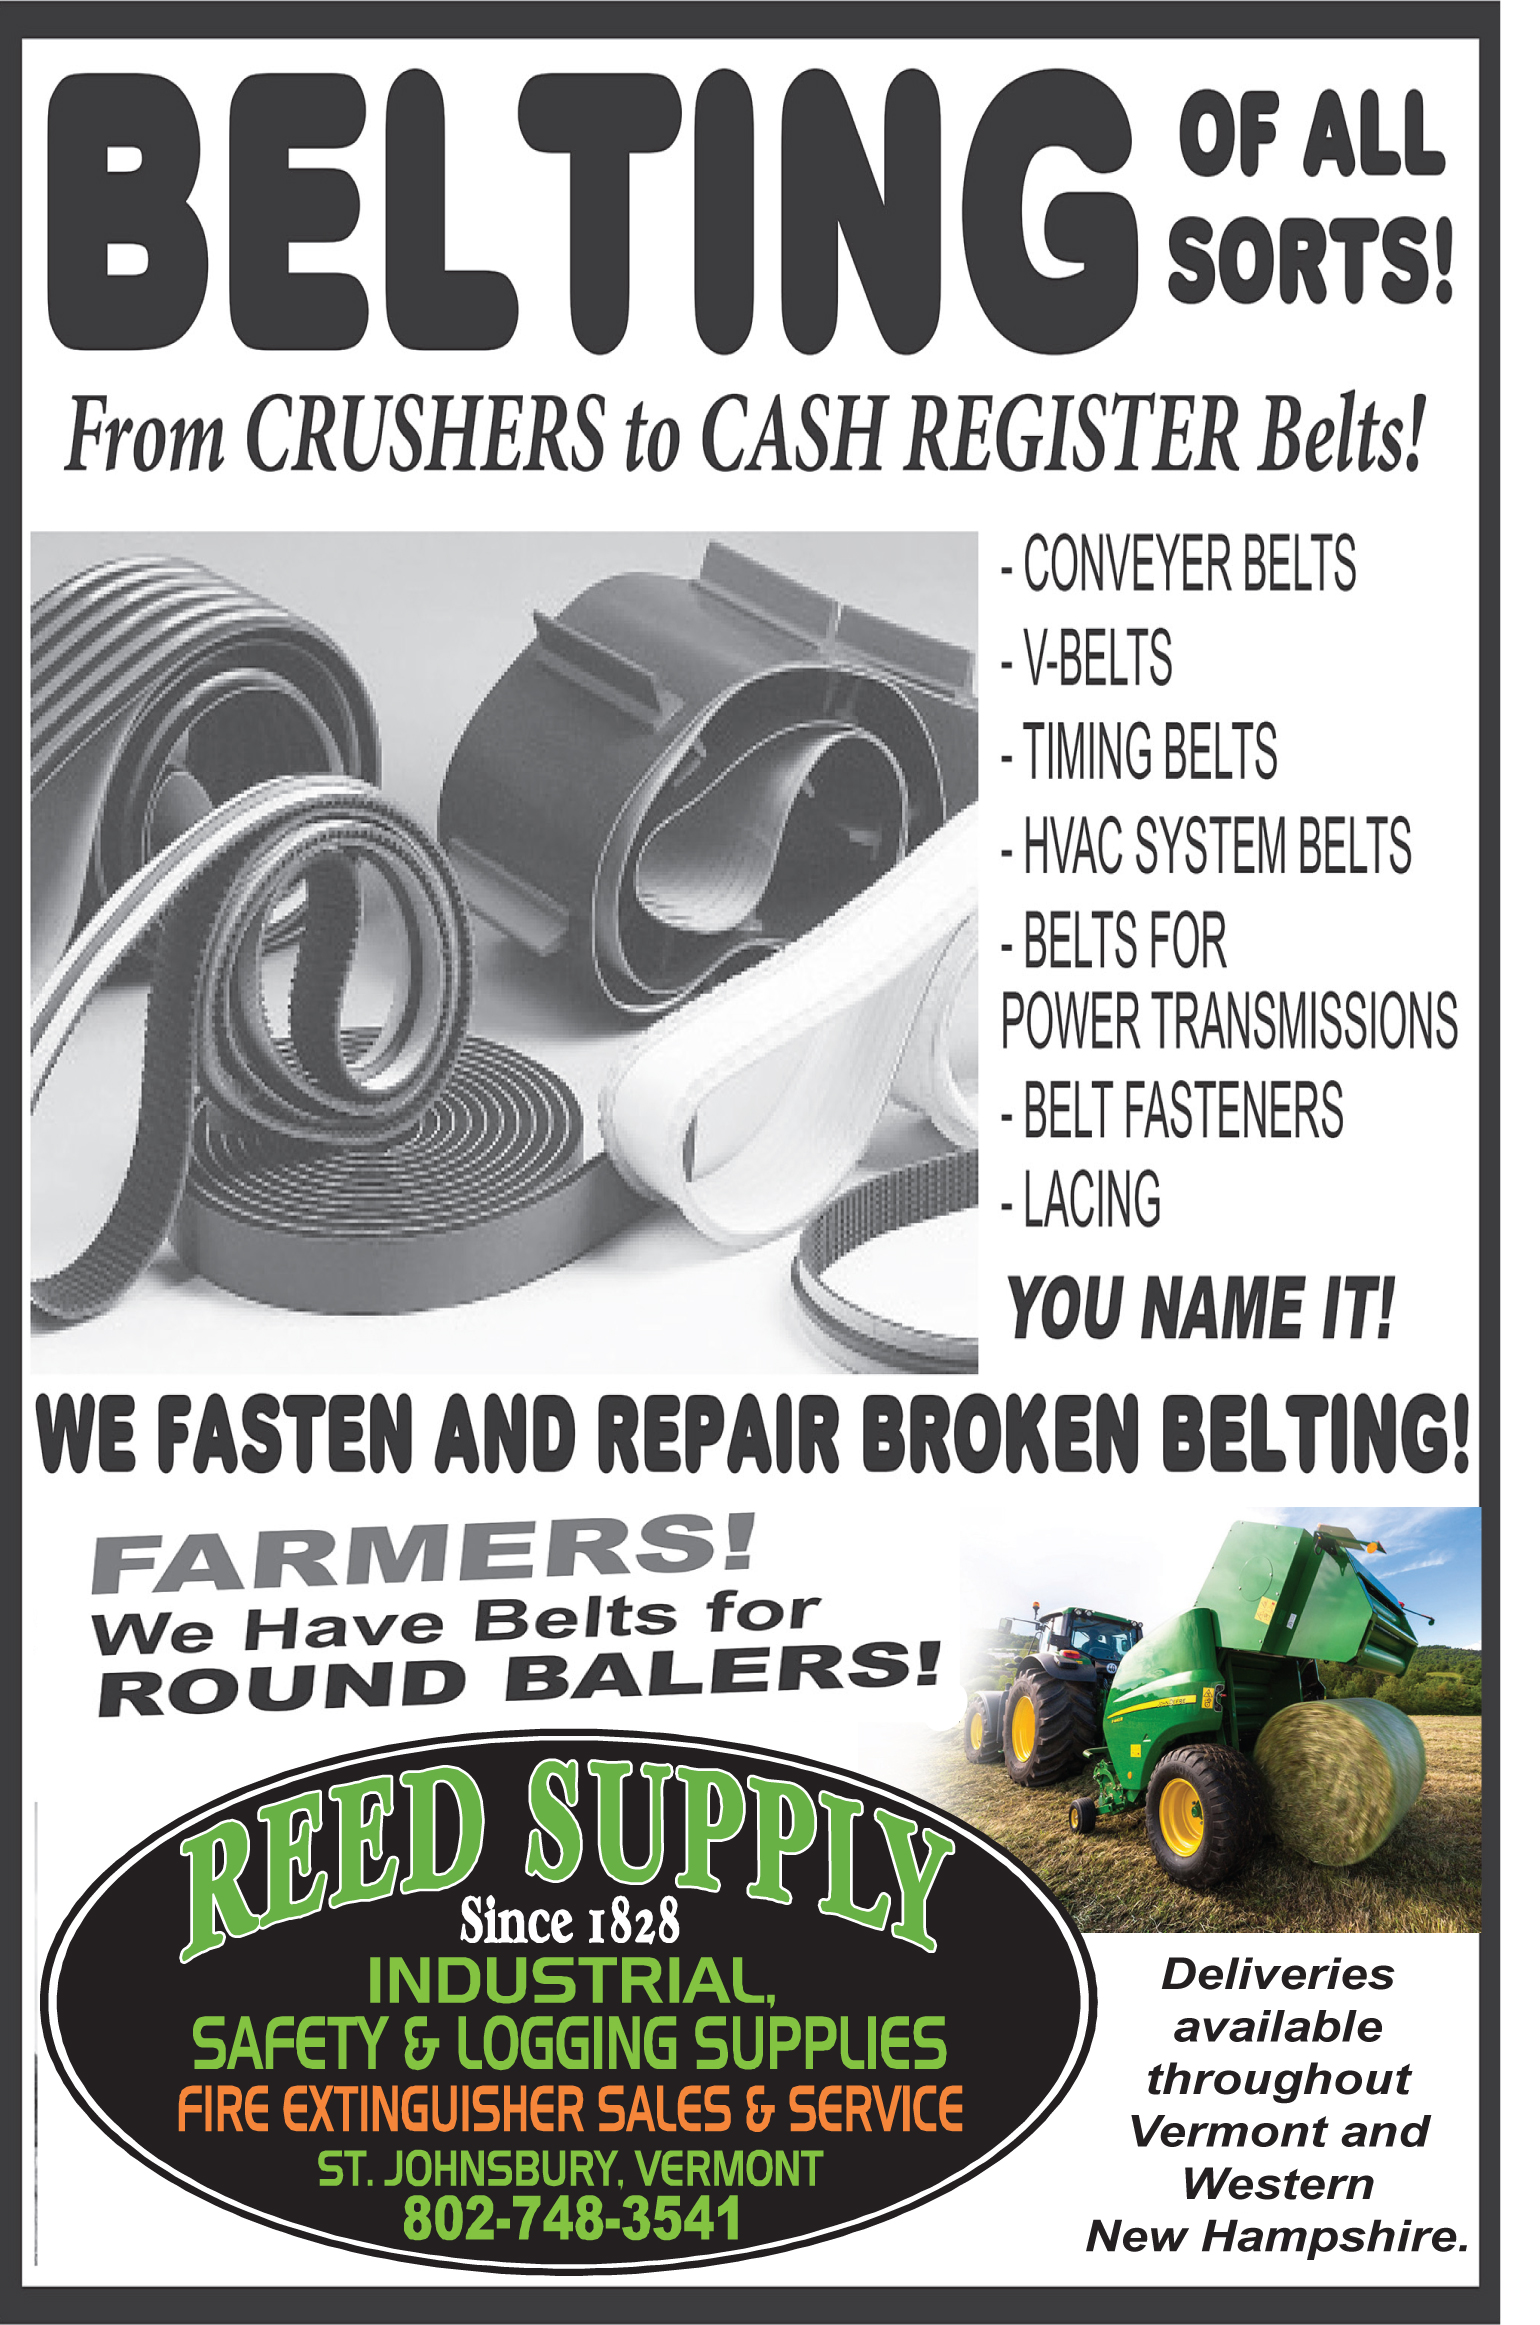 Belting of All Sorts! From Crushers to Cash Register Belts!